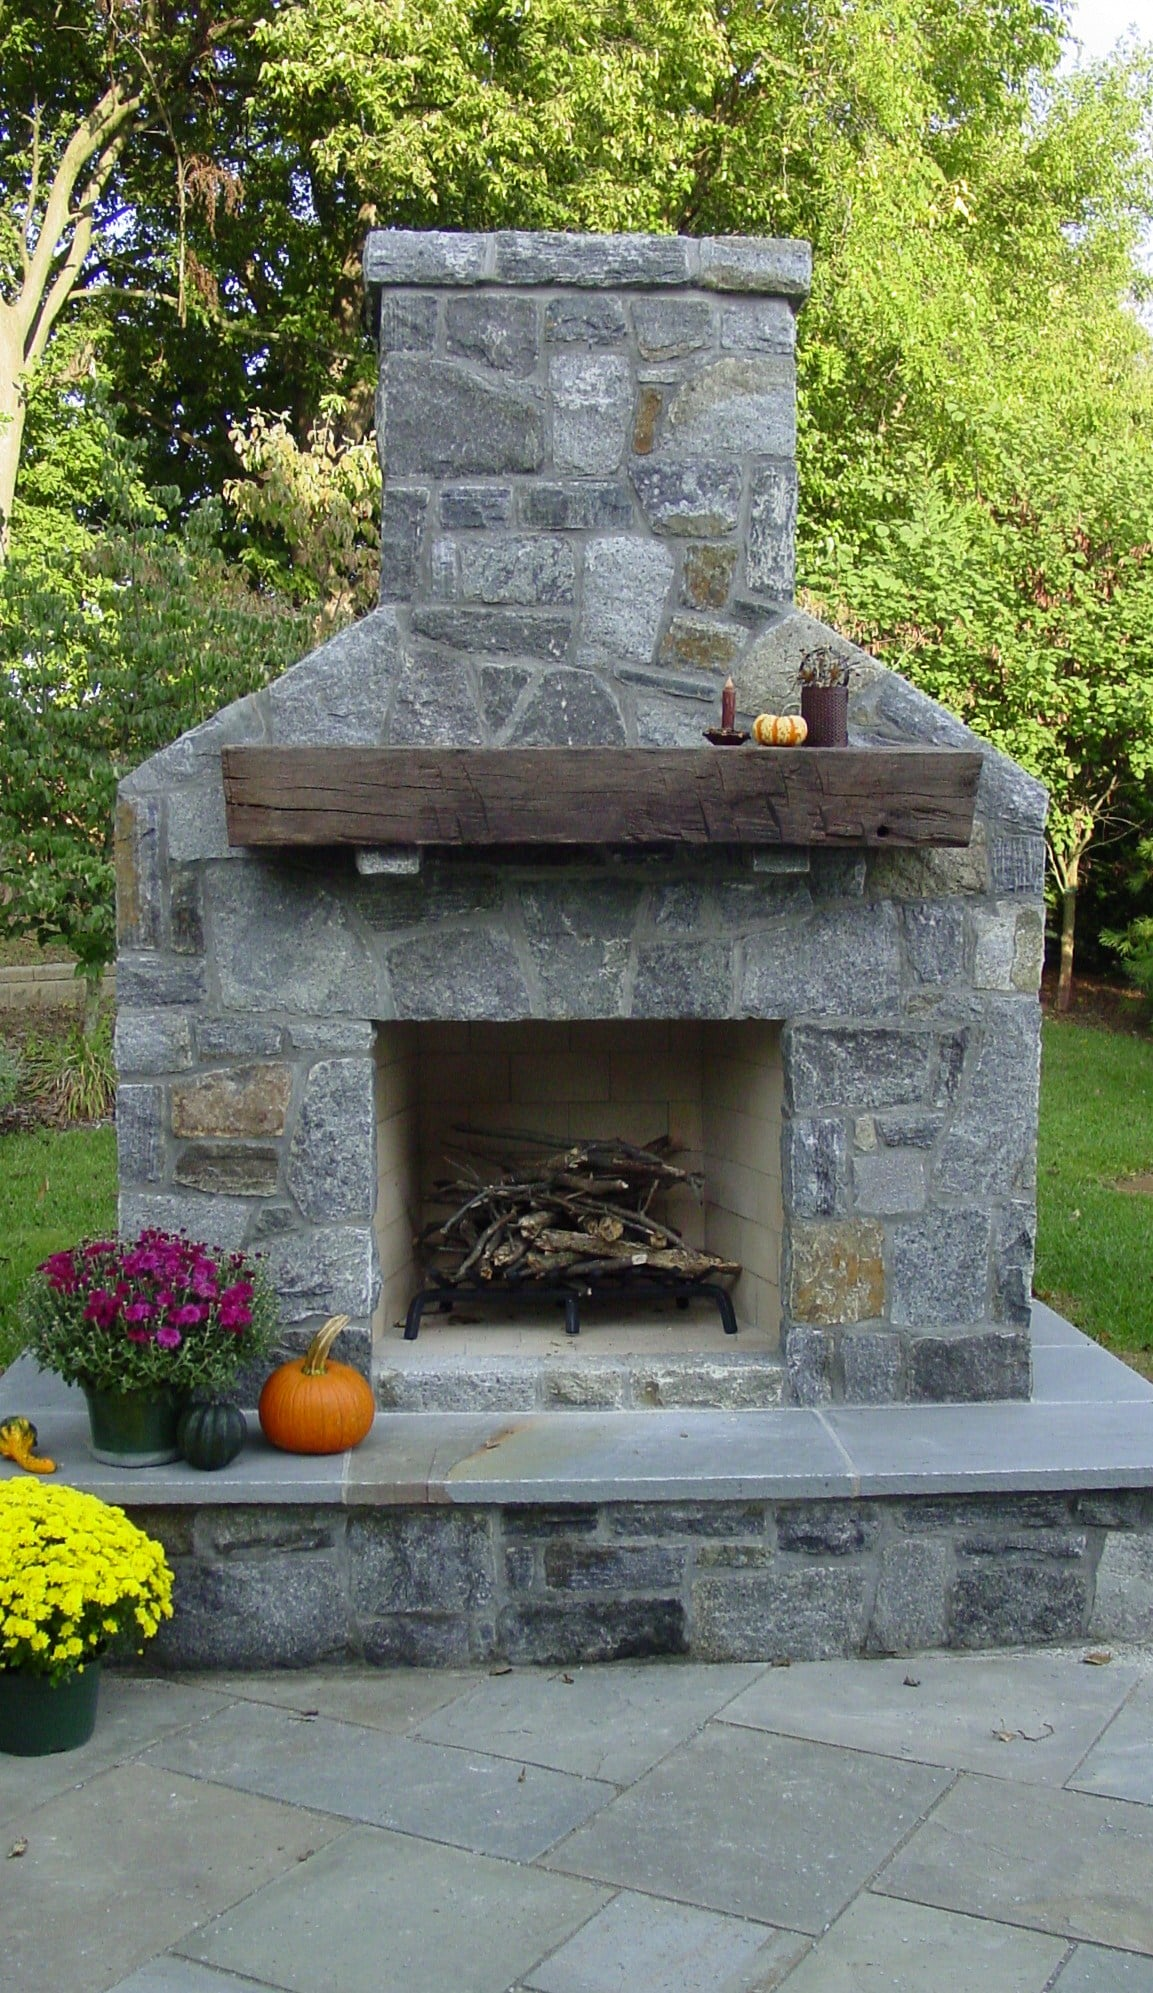 253 Fireplace with Lake George Granite Stone Veneer